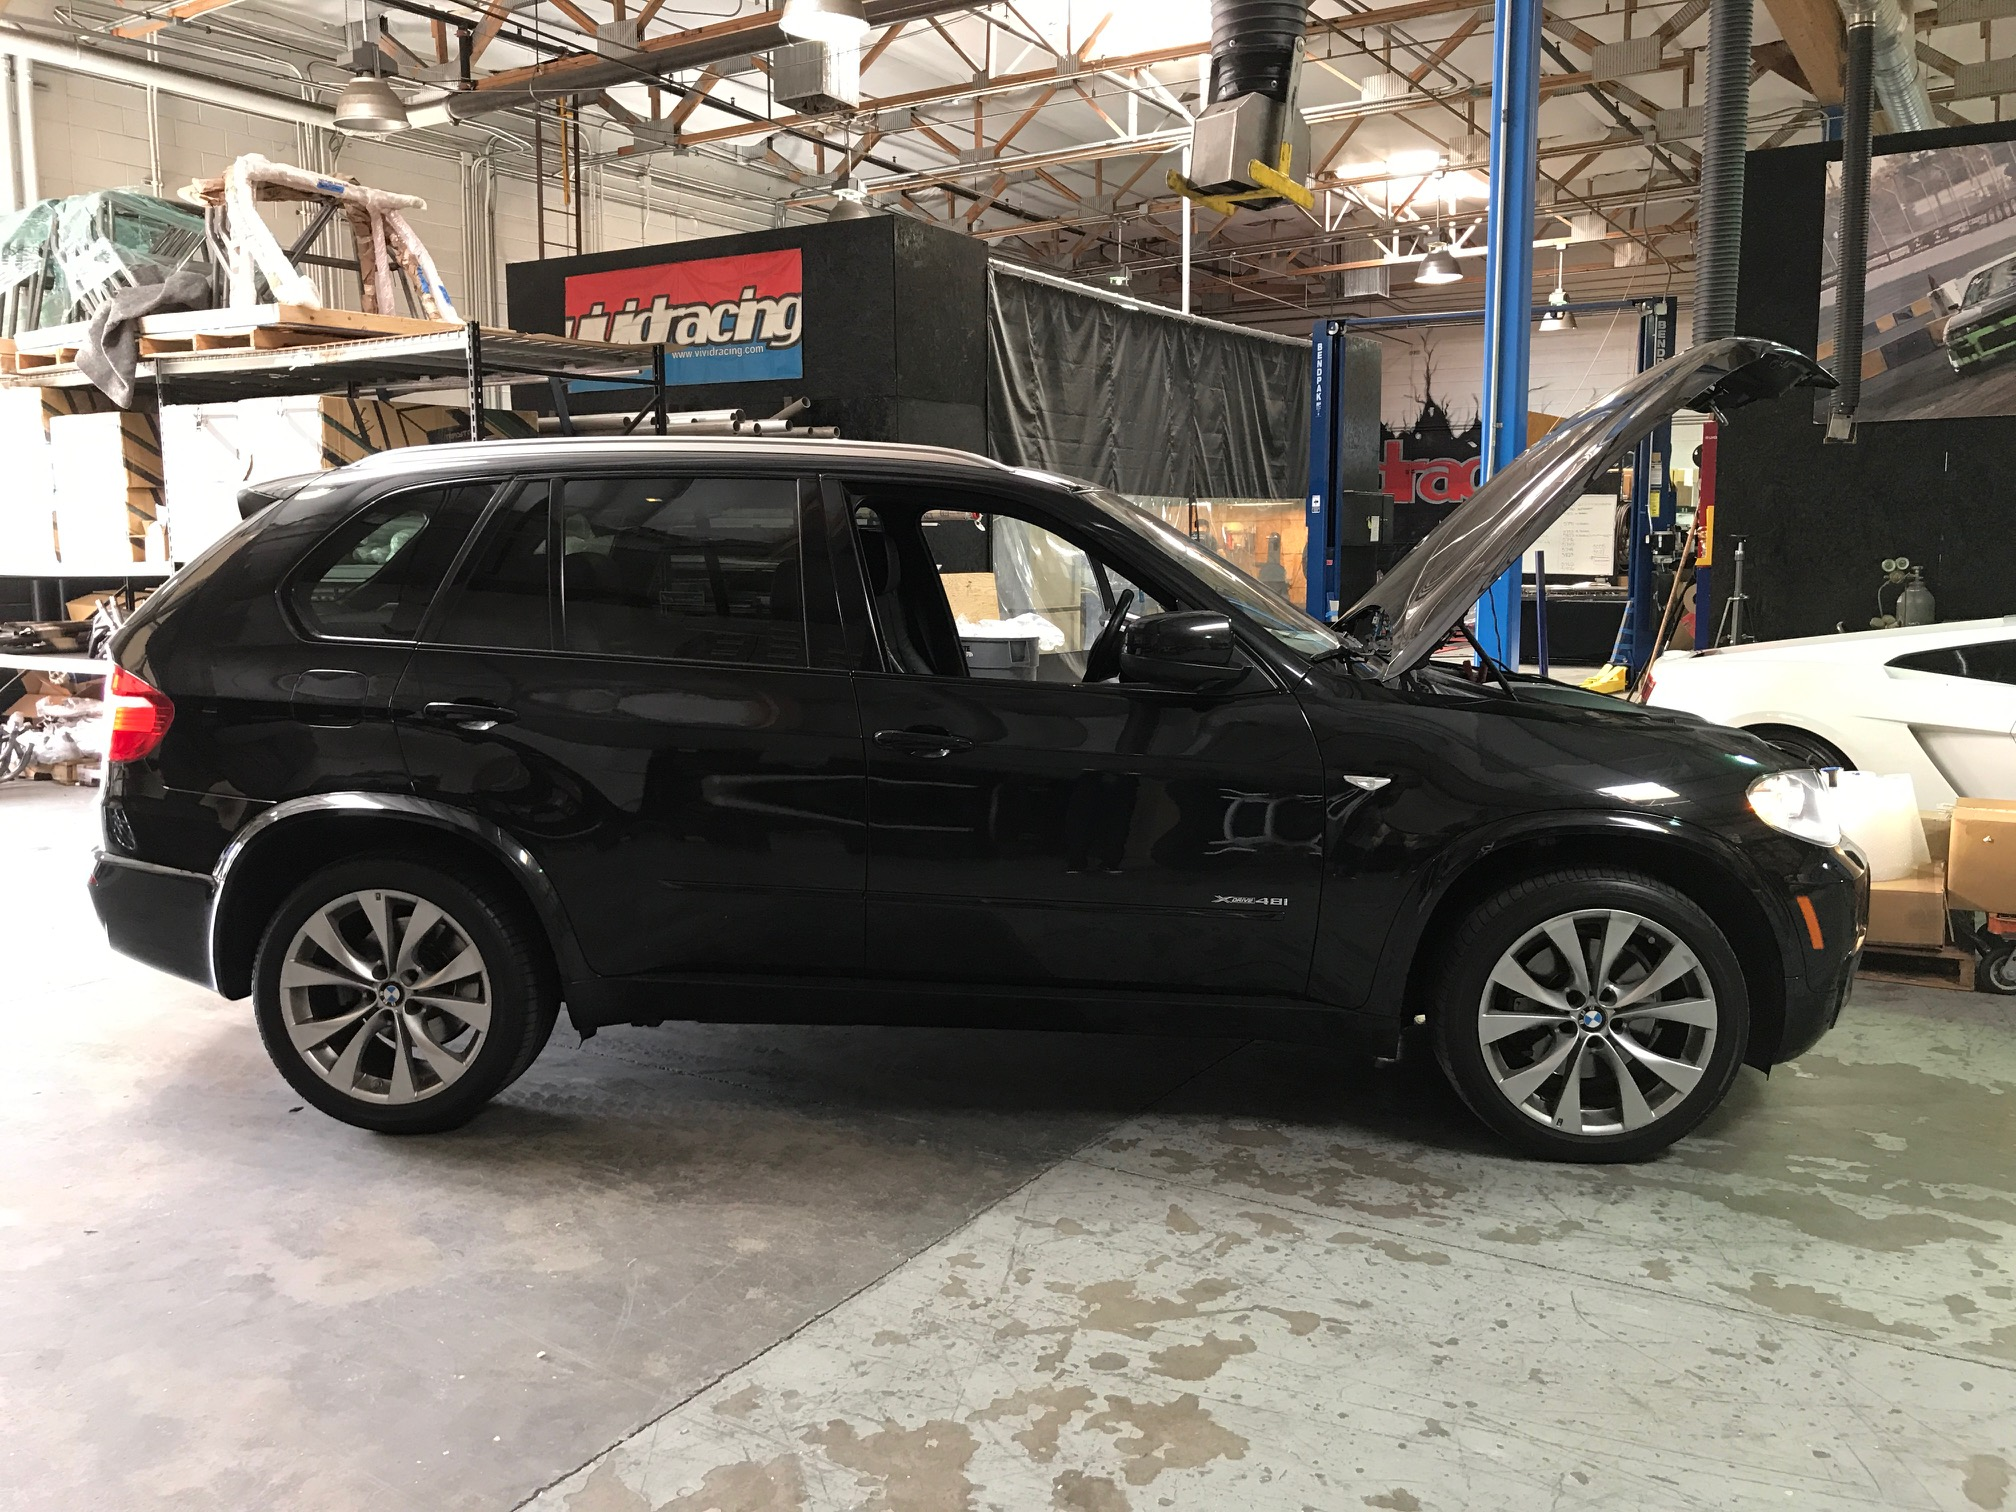 james-bmw-x5-48-tune-1